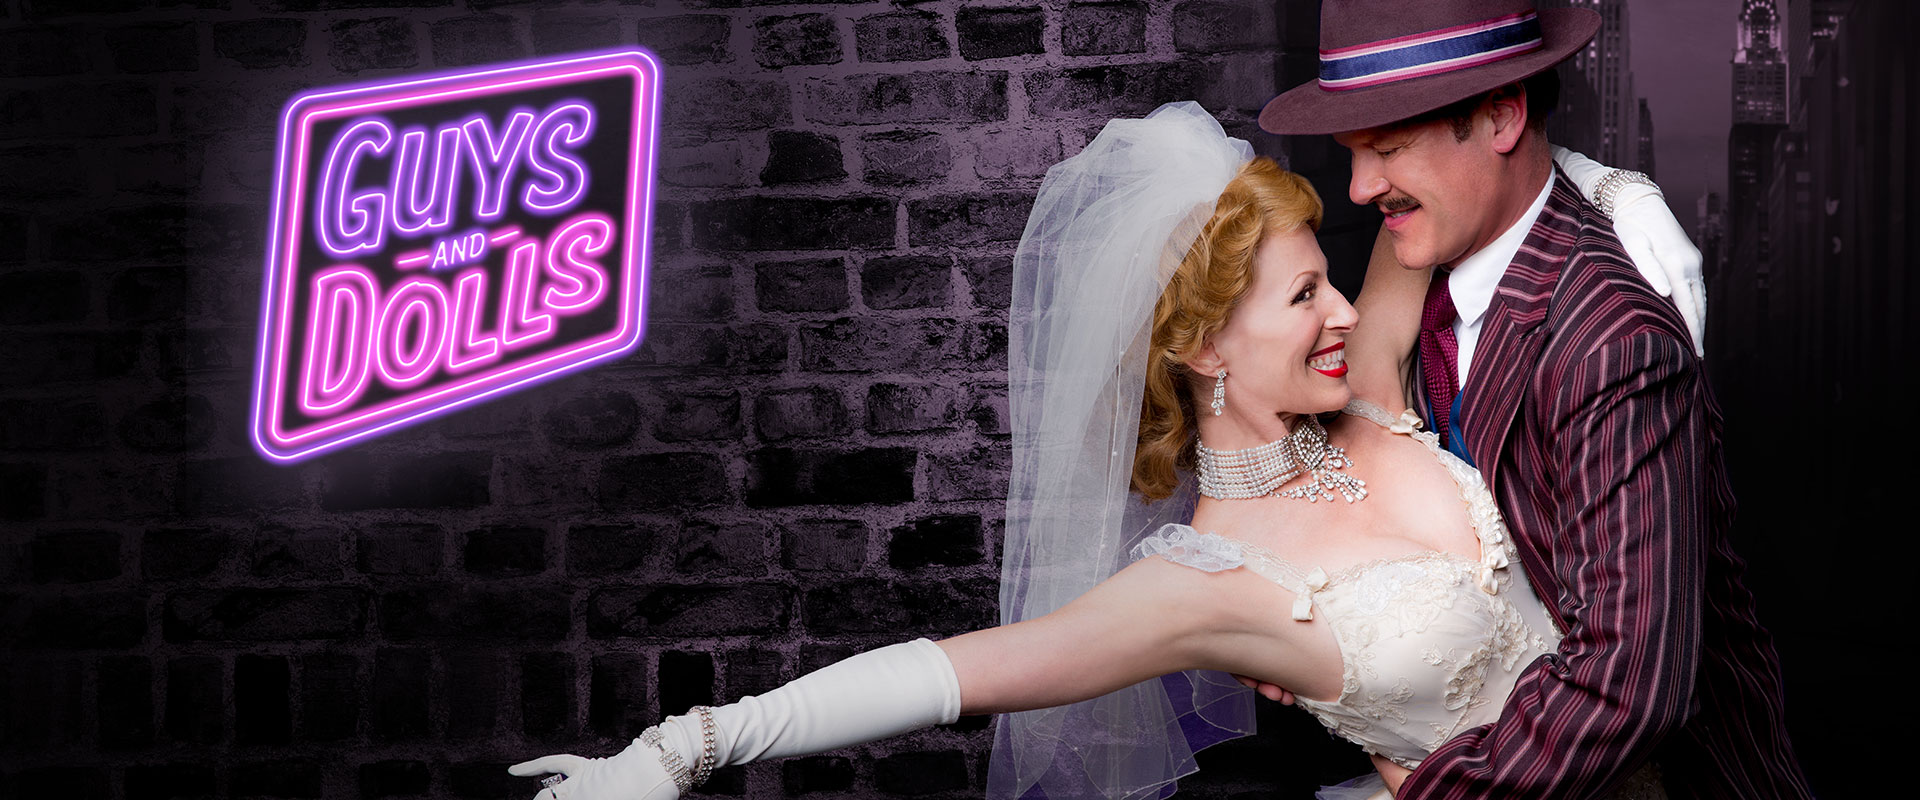 Publicity image from Guys and Dolls linking to the trailer